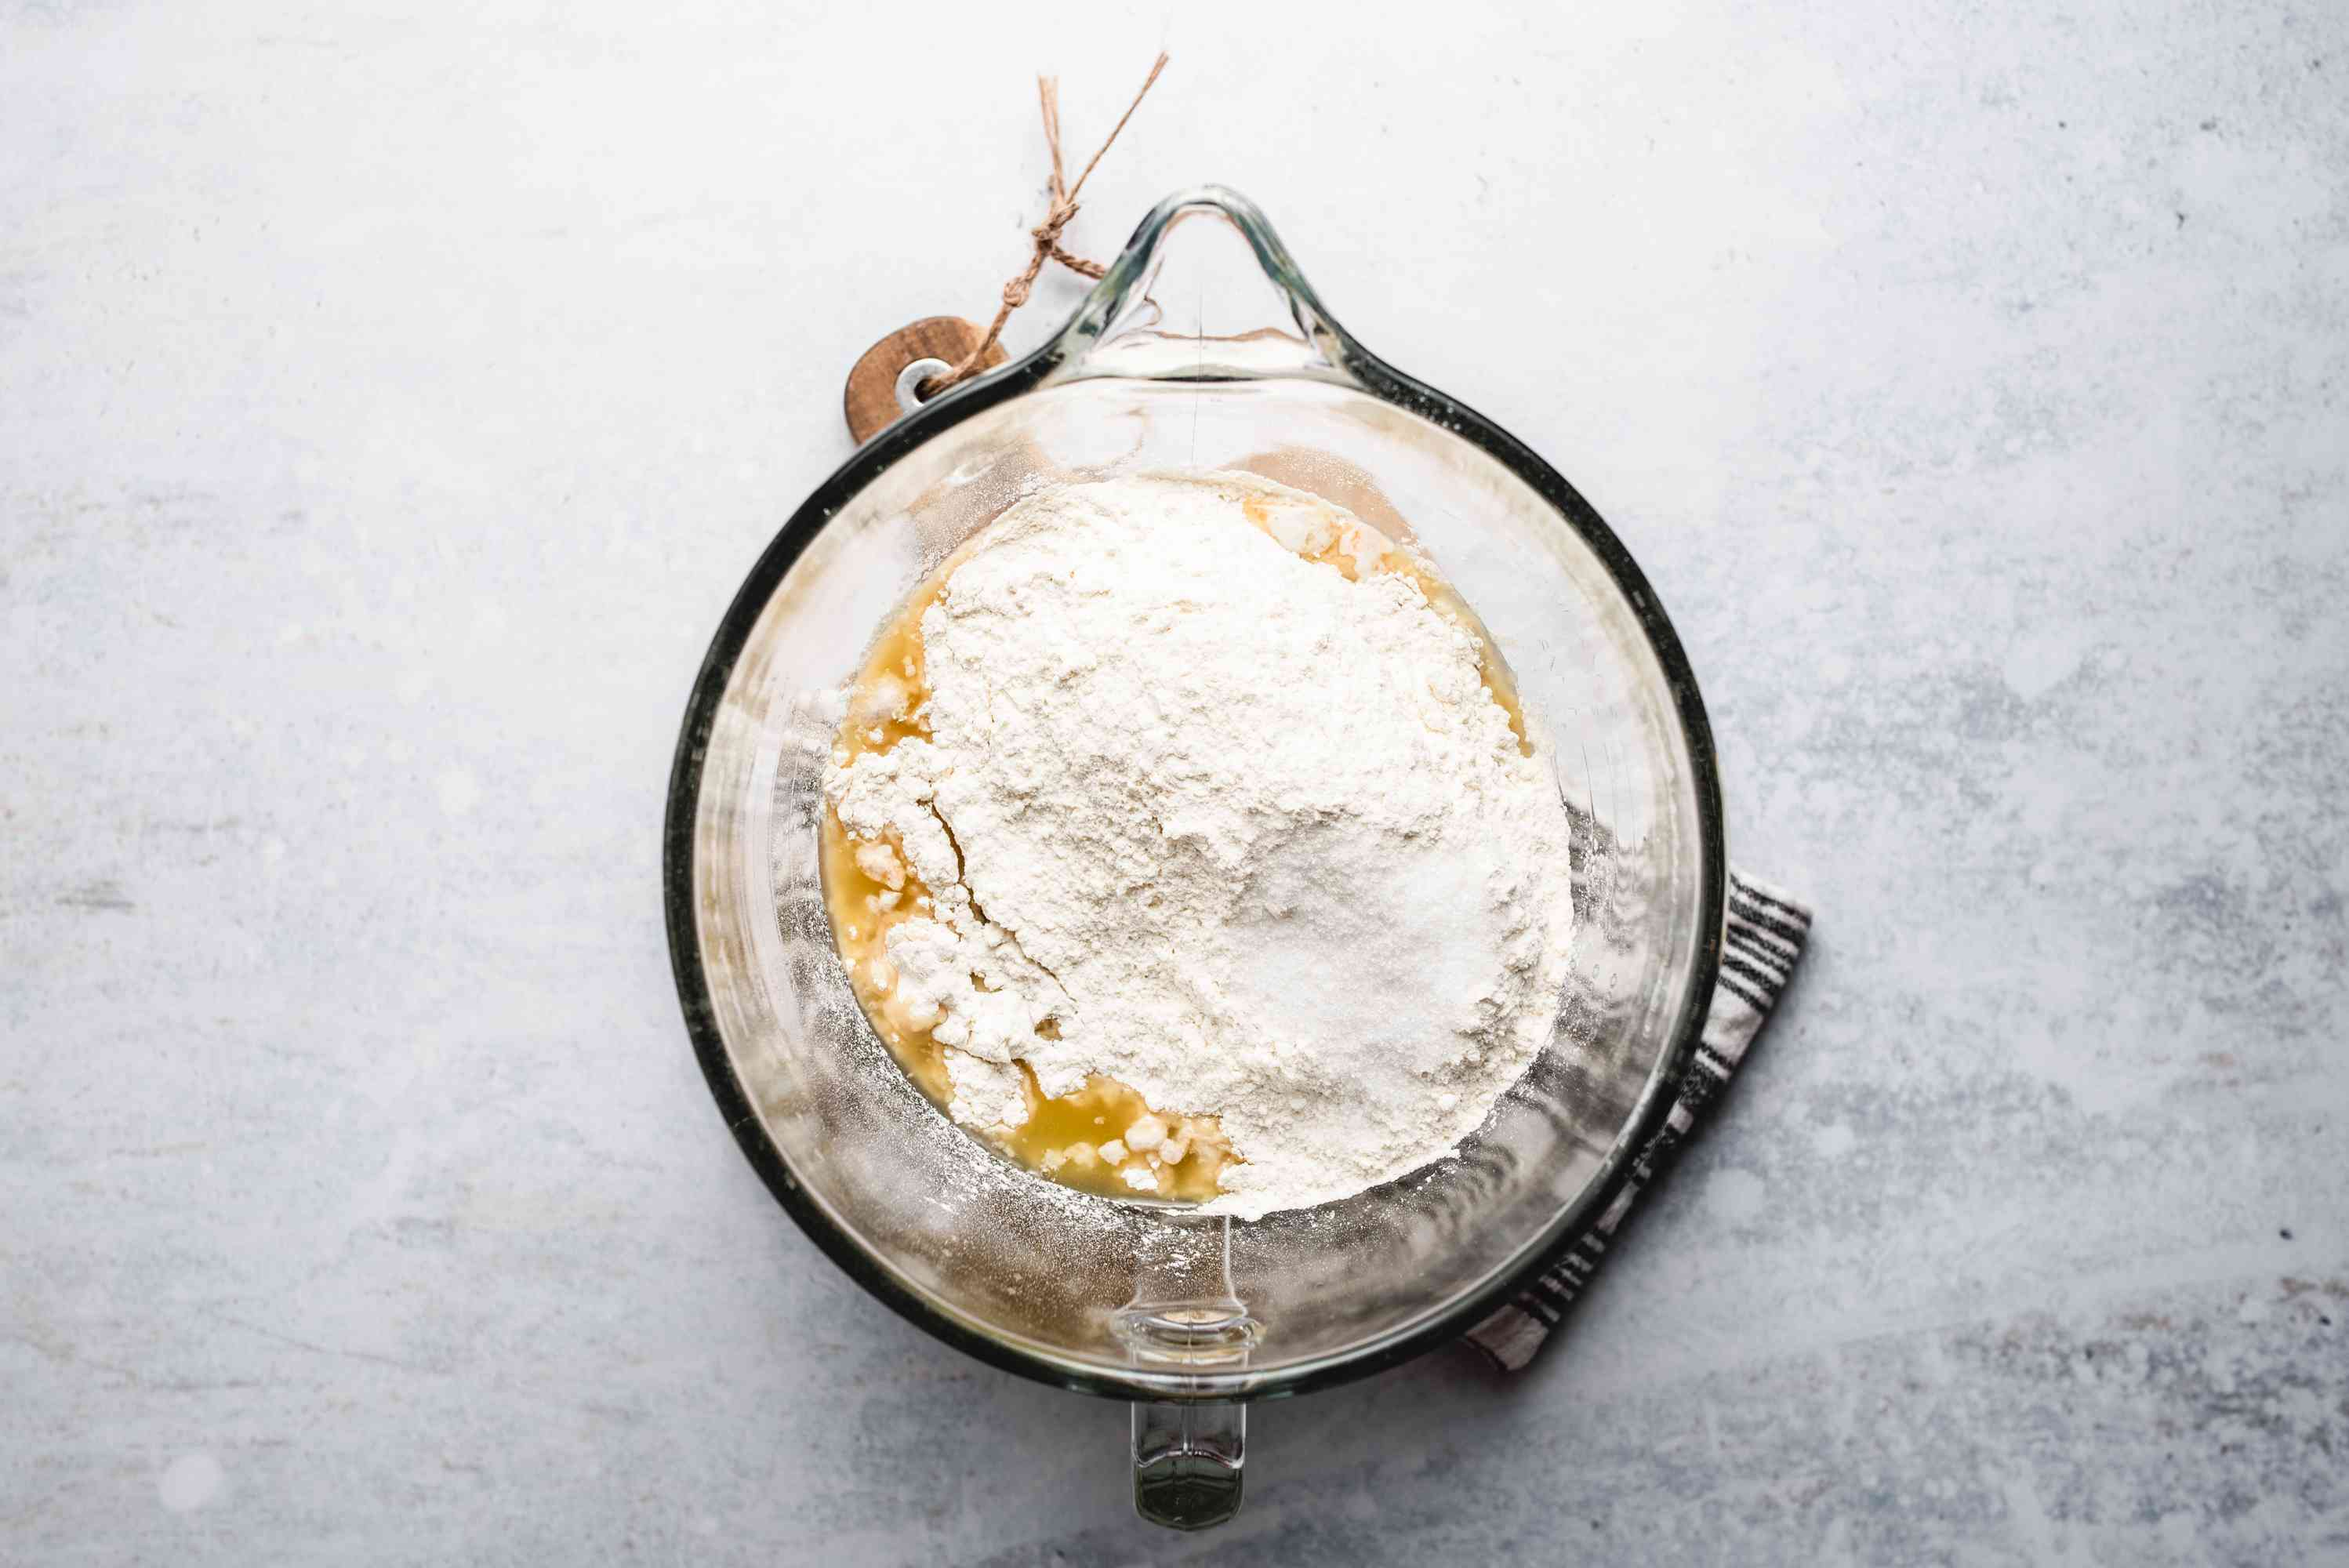 Flour, egg, butter, sugar, and salt in mixing bowl